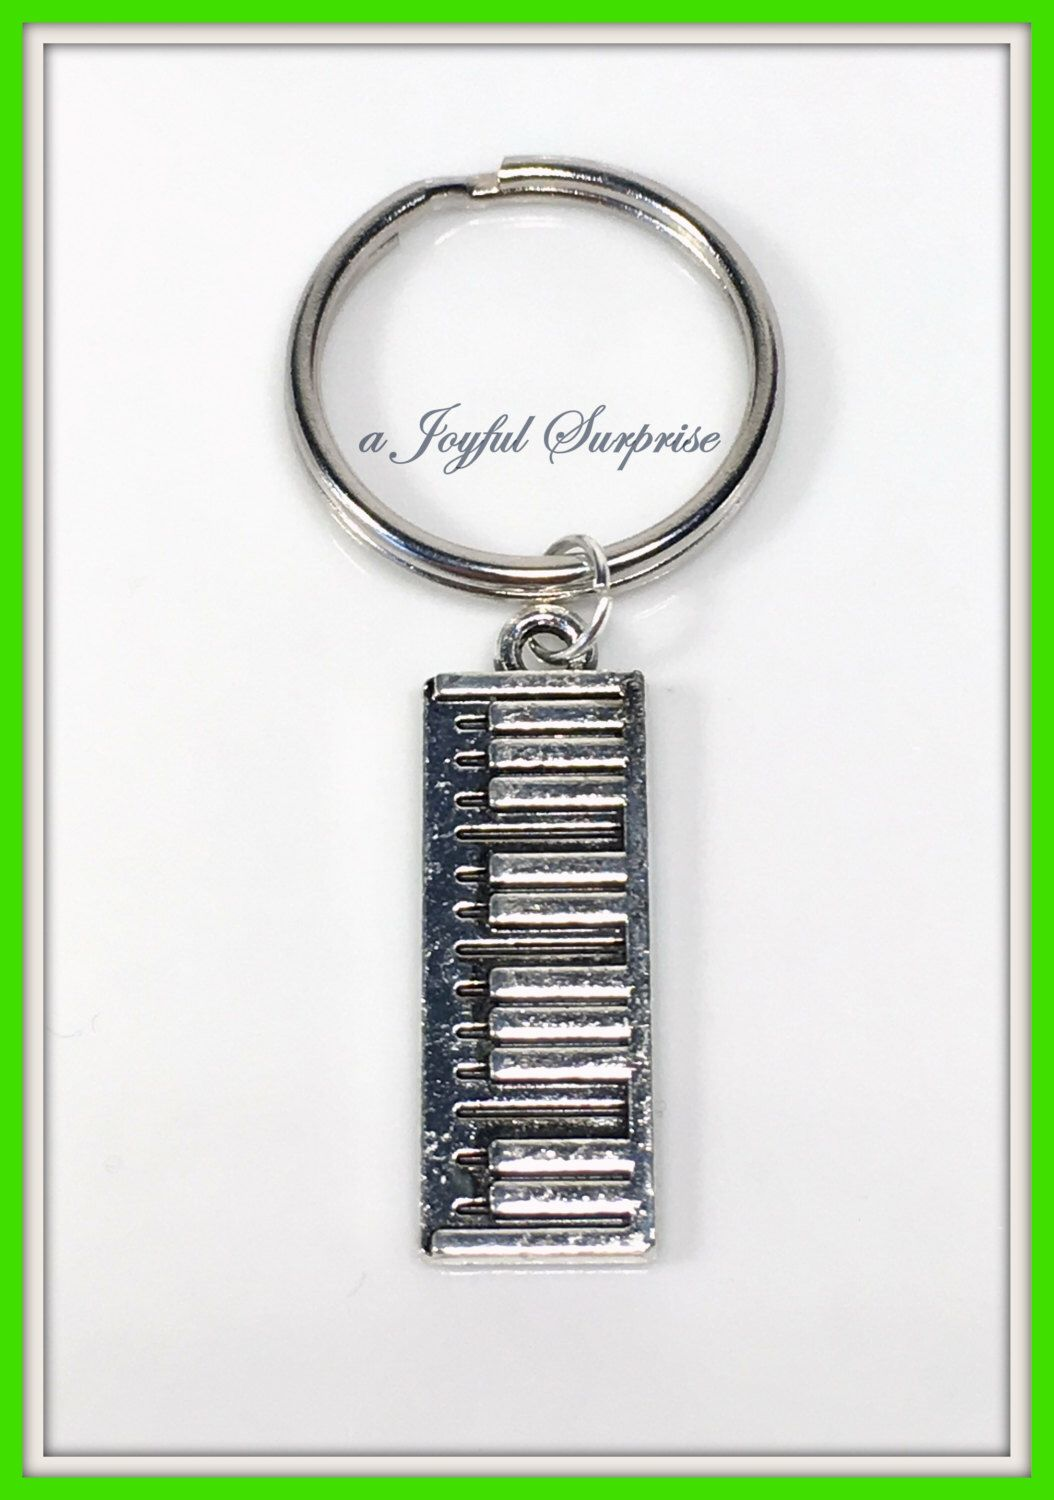 Pin by a Joyful Surprise on Musical Key Chains  706ced08d1d5